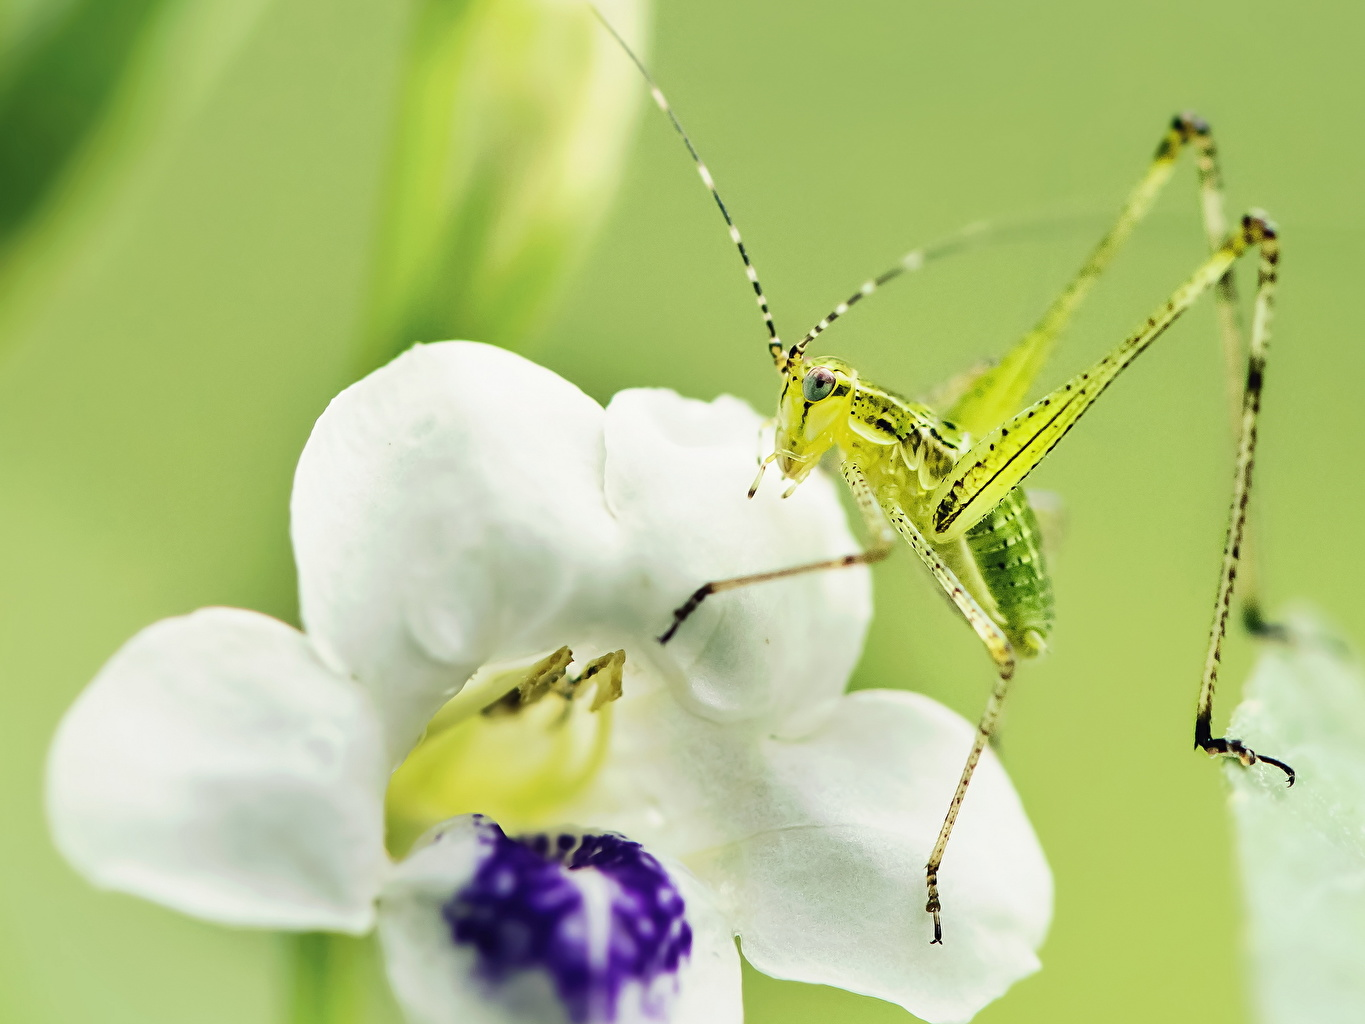 Photos Insects Grasshoppers Closeup Animals animal